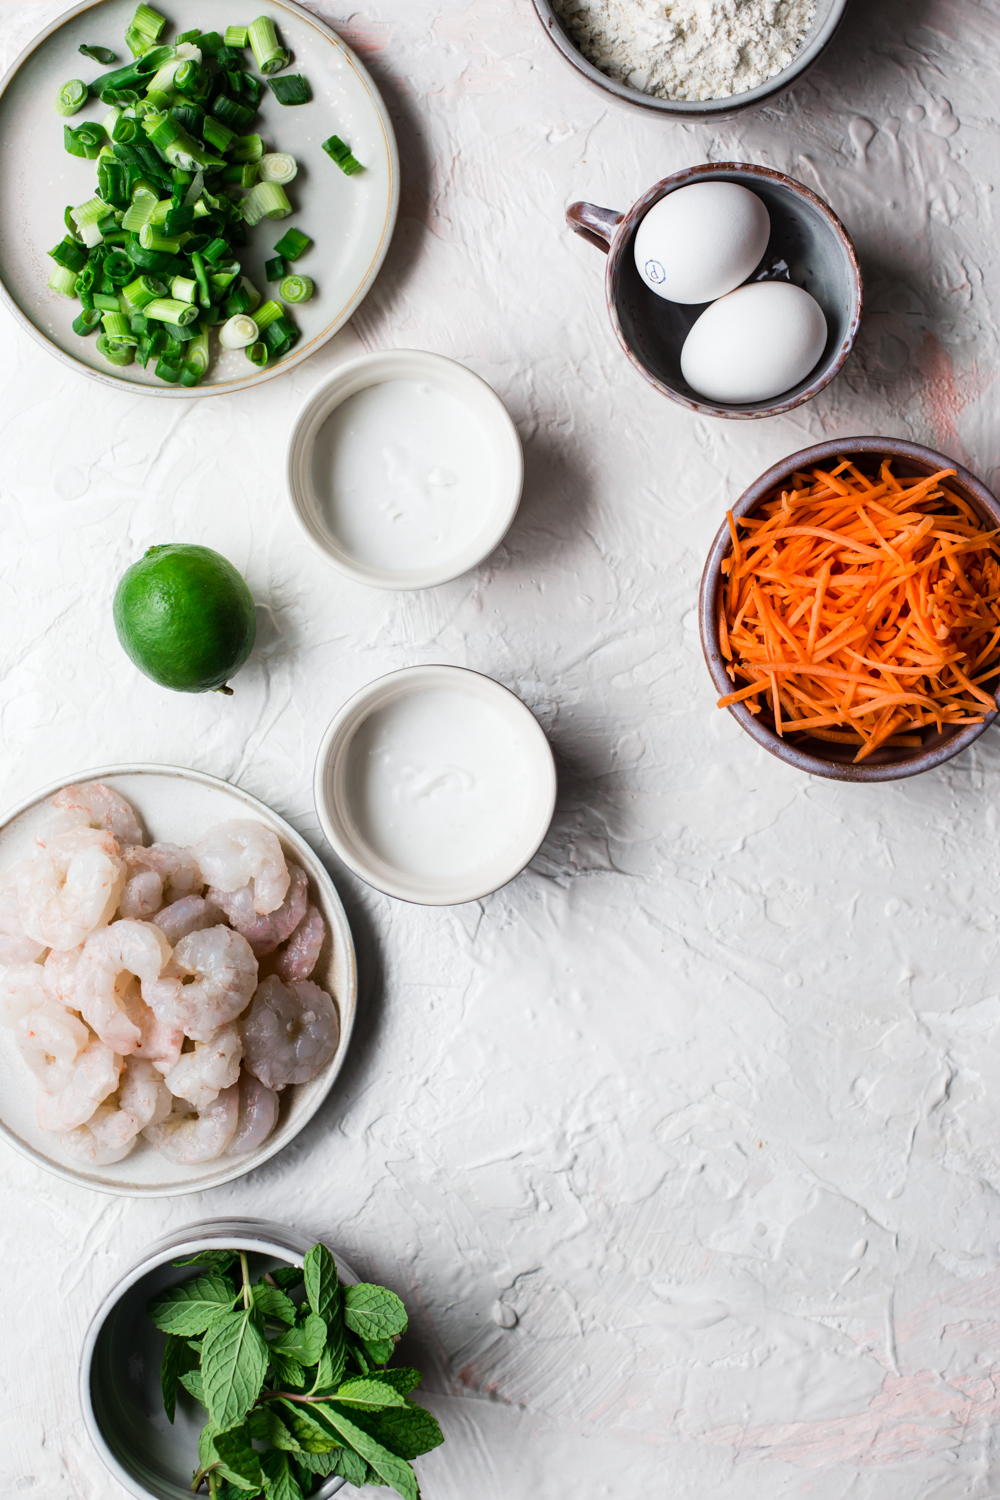 Shrimp and Carrot Stir Fry from Fred Meyer Stores